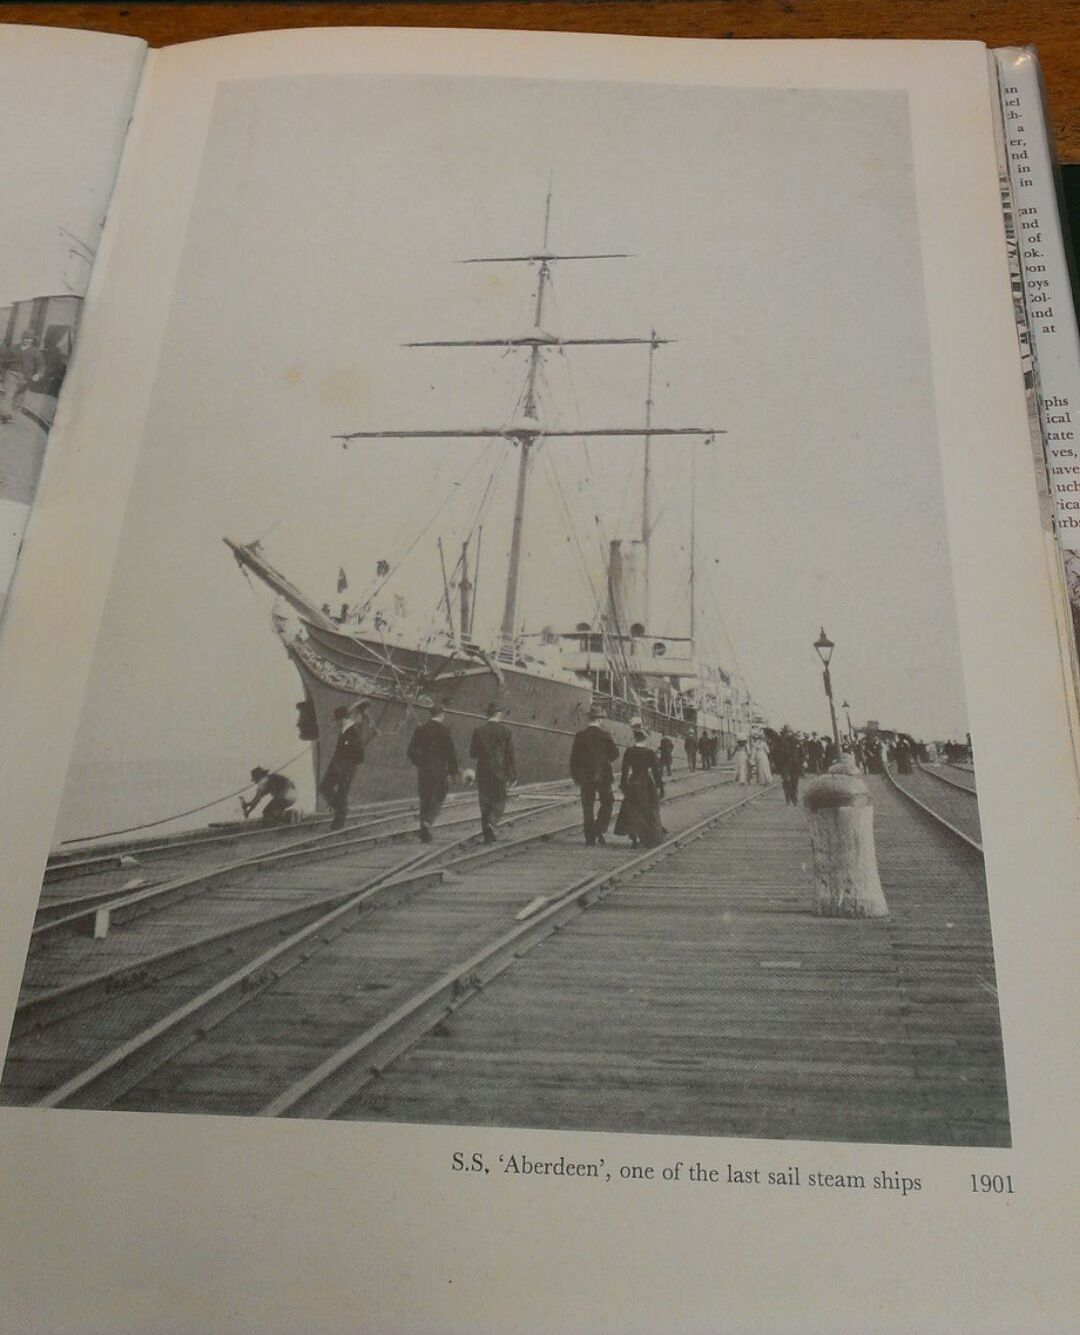 STEAM SAILING SHIP SS ABERDEEN DOCKED AT MELBOURNE PRINCES PIER IN 1901. THIS IS THE SHIP THAT BROUG